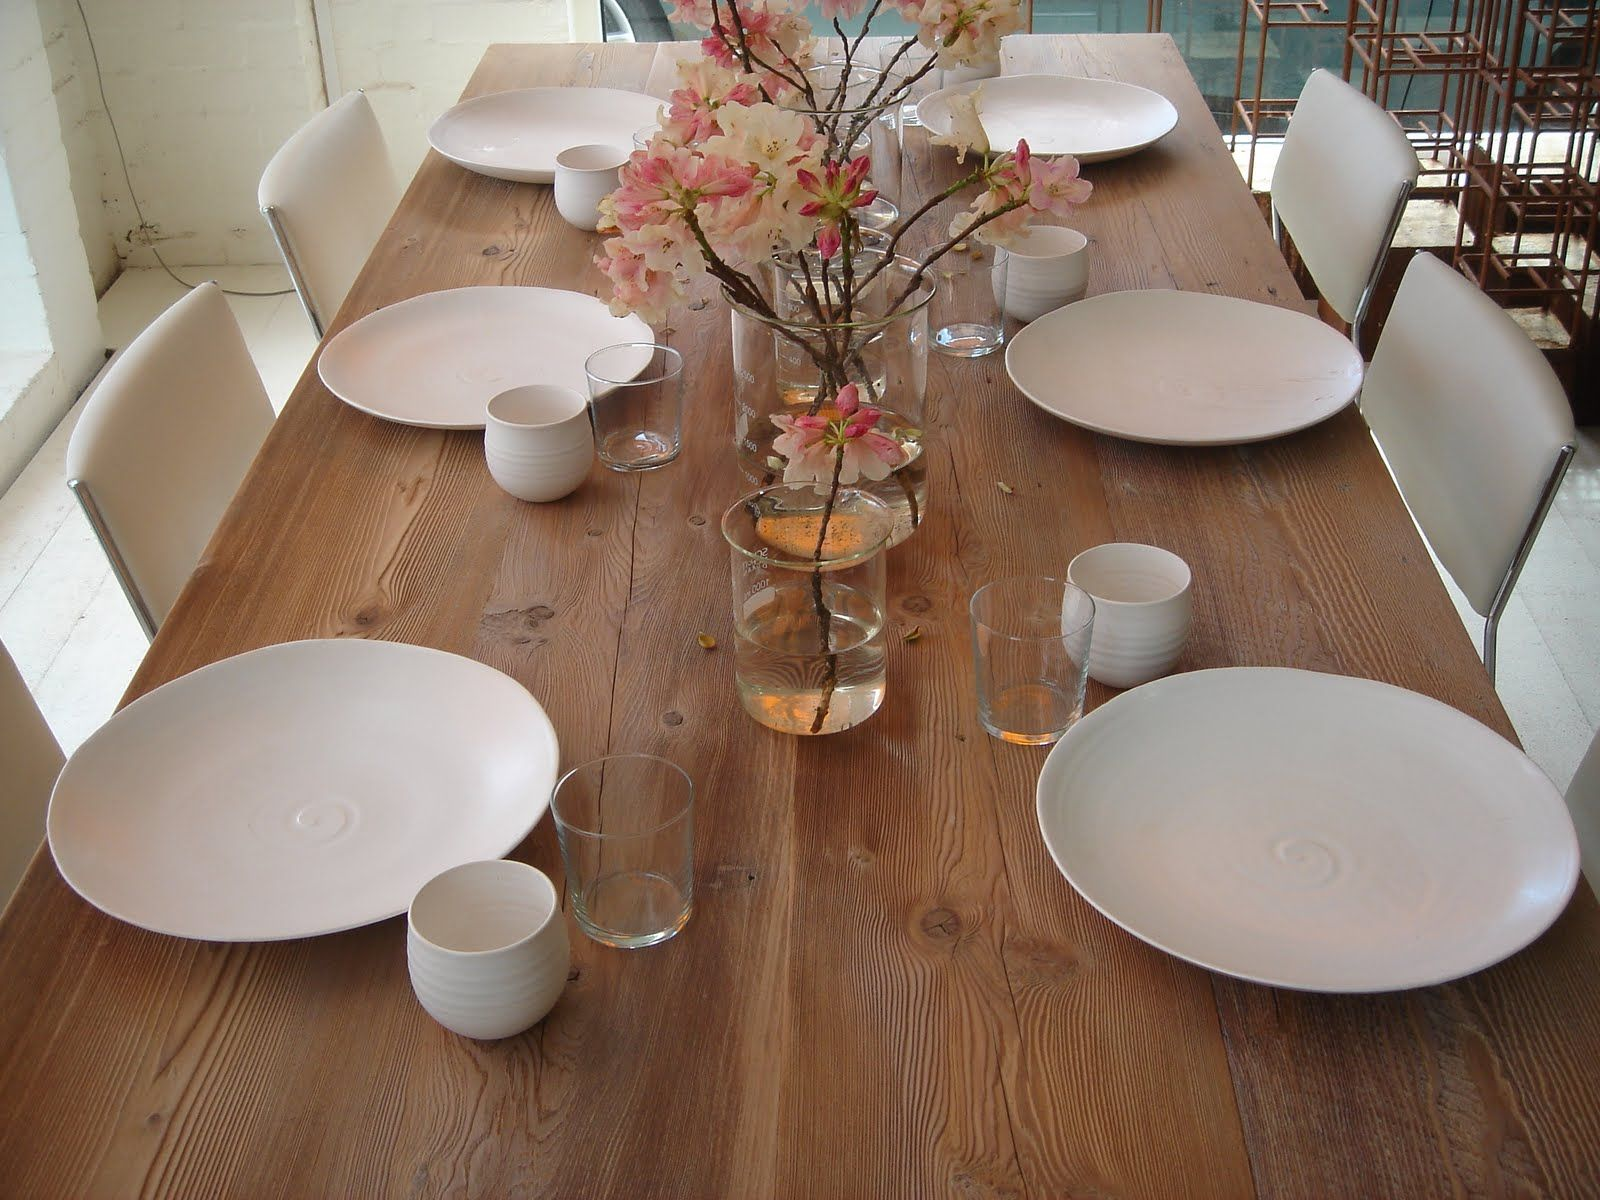 Mark tuckey table setting (With images) Timber furniture